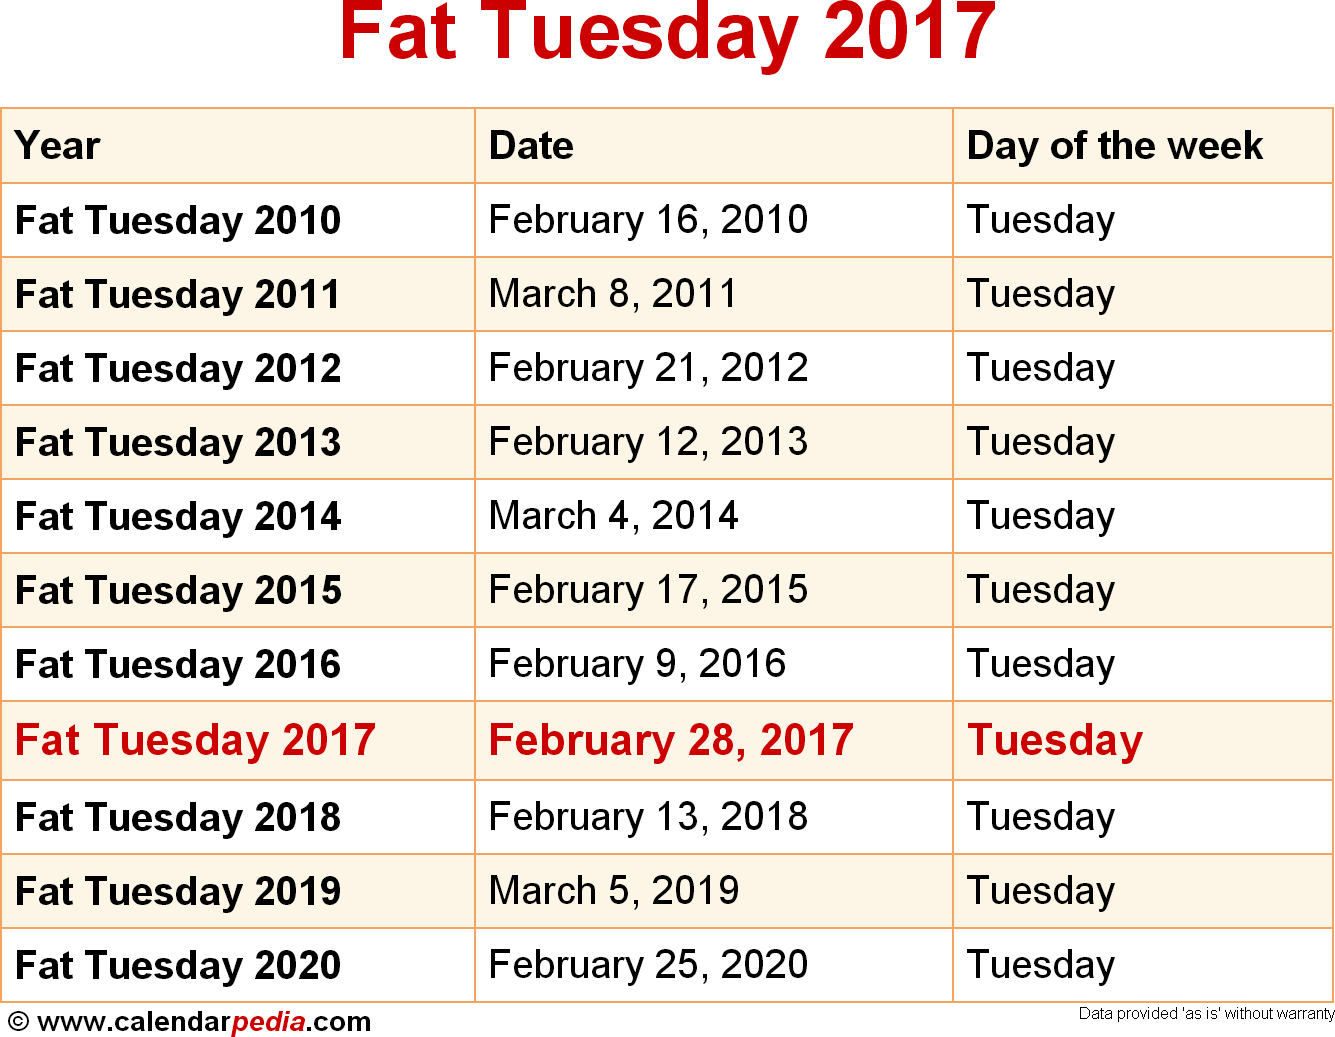 Fat Tuesday 2017